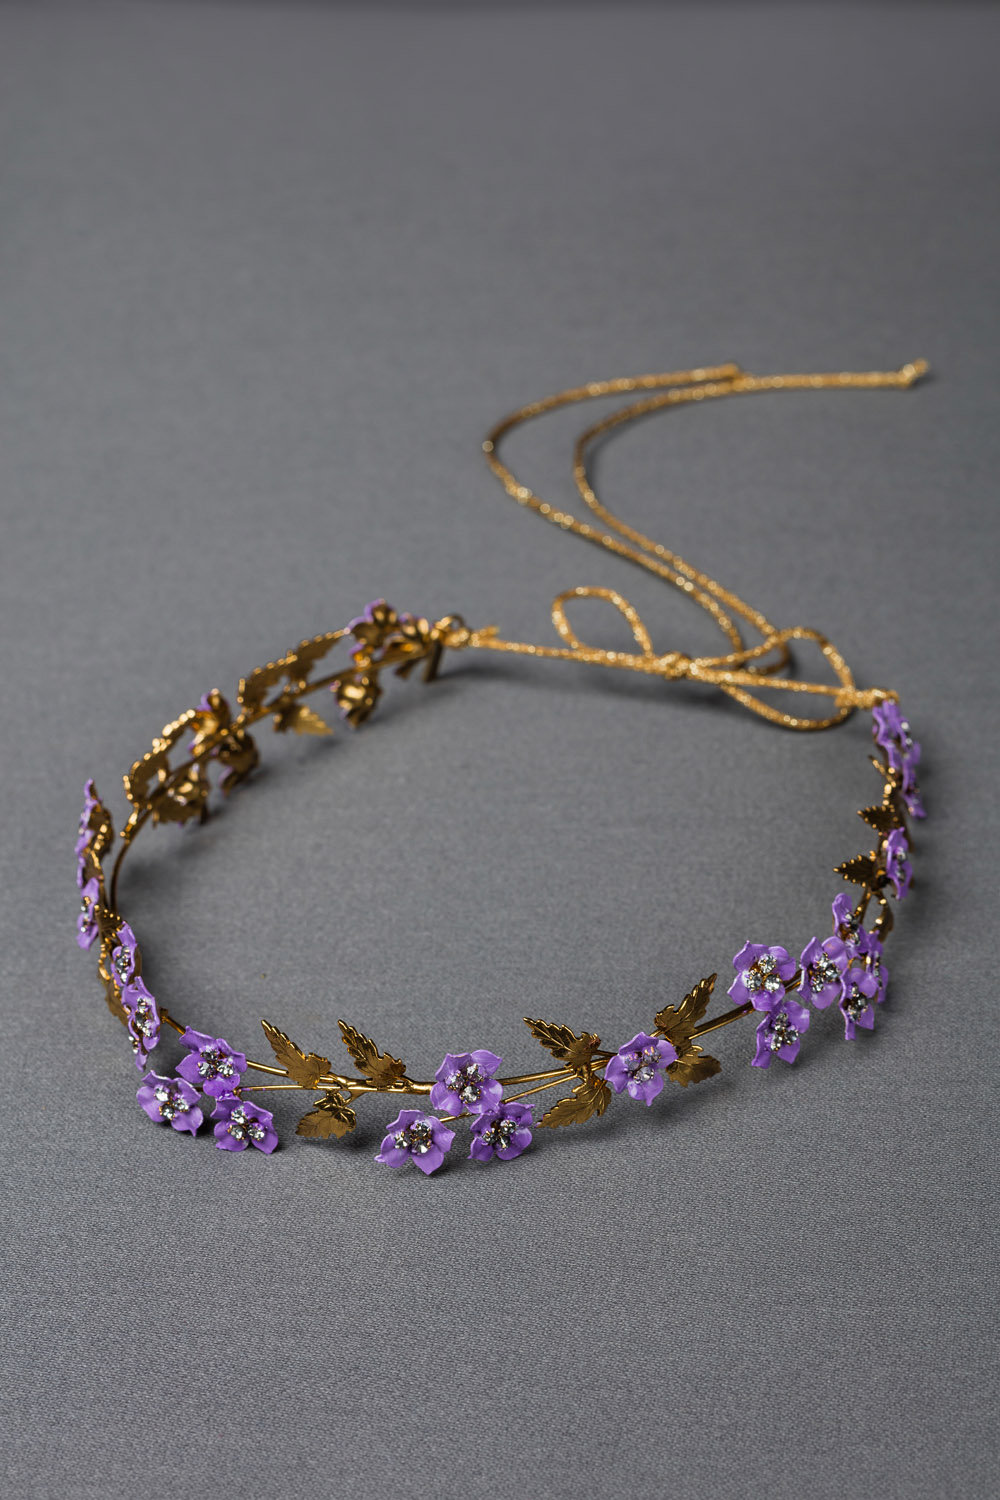 GOLD METAL LEAF AND LILAC HANDPAINTED FLOWER DECORATED HEAD PIECE